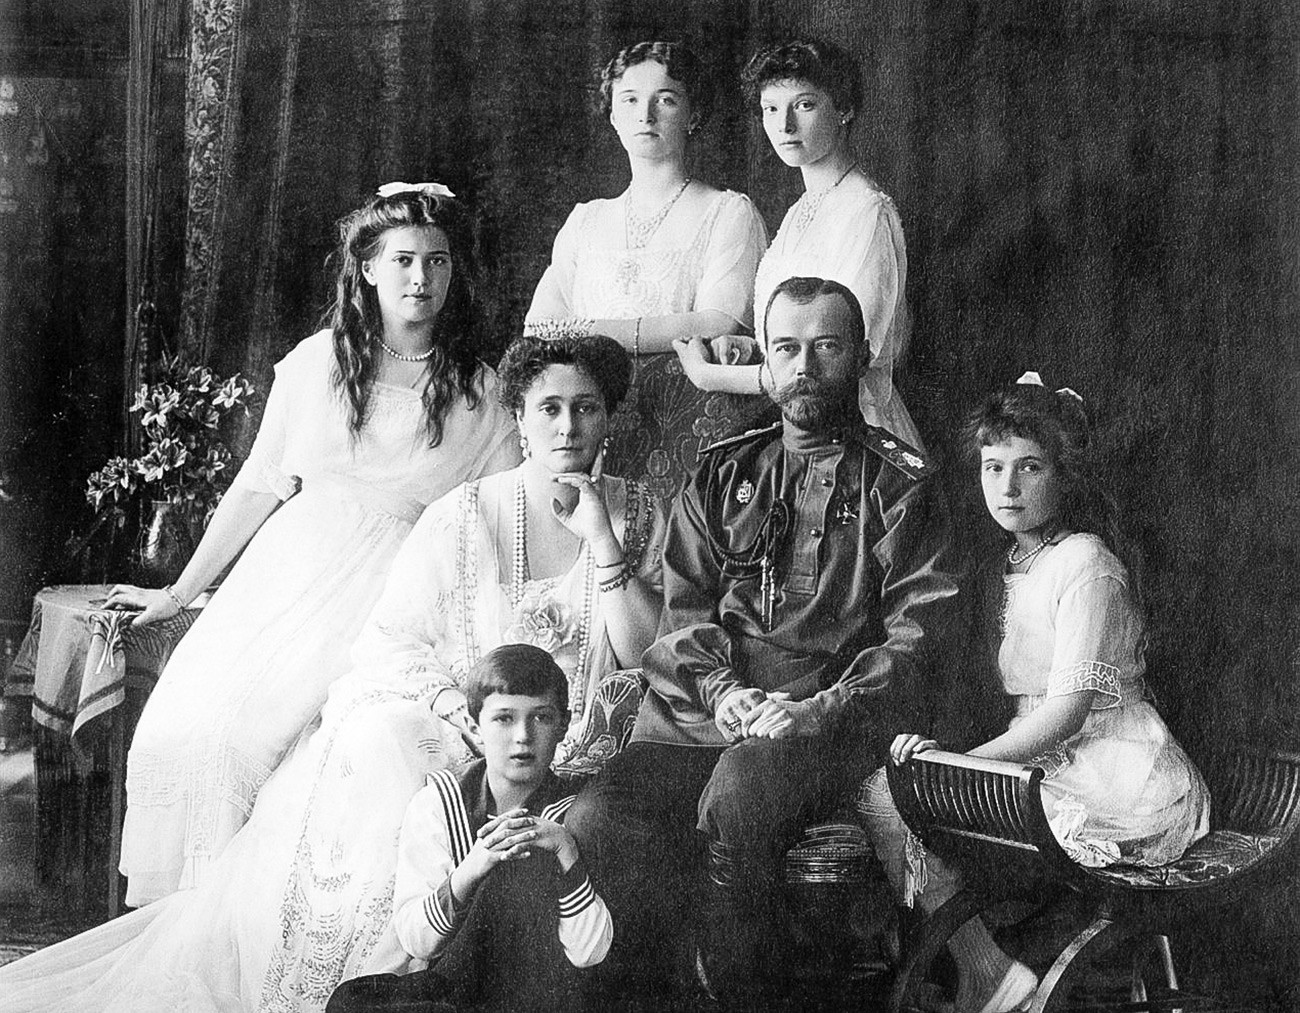 Emperor Nicholas II with his spouse, Alix of Gessen (baptized to Orthodoxy as Alexandra Fedorovna) and their children.